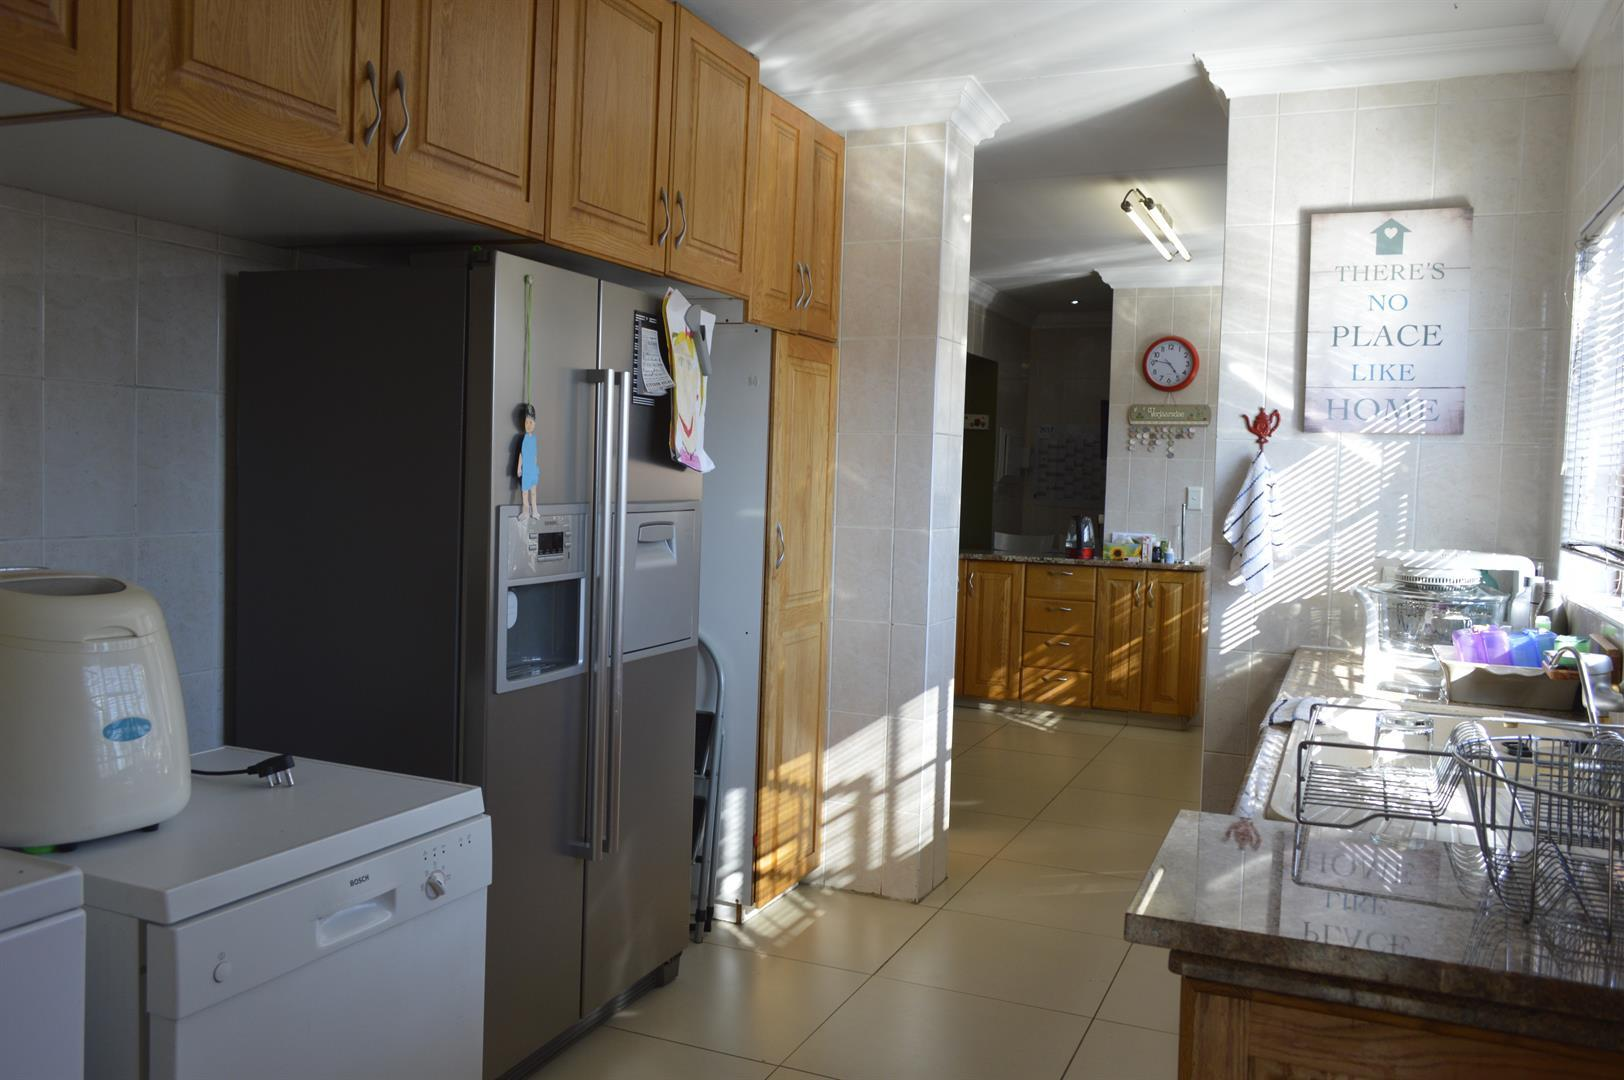 Raslouw A H property for sale. Ref No: 13442161. Picture no 7